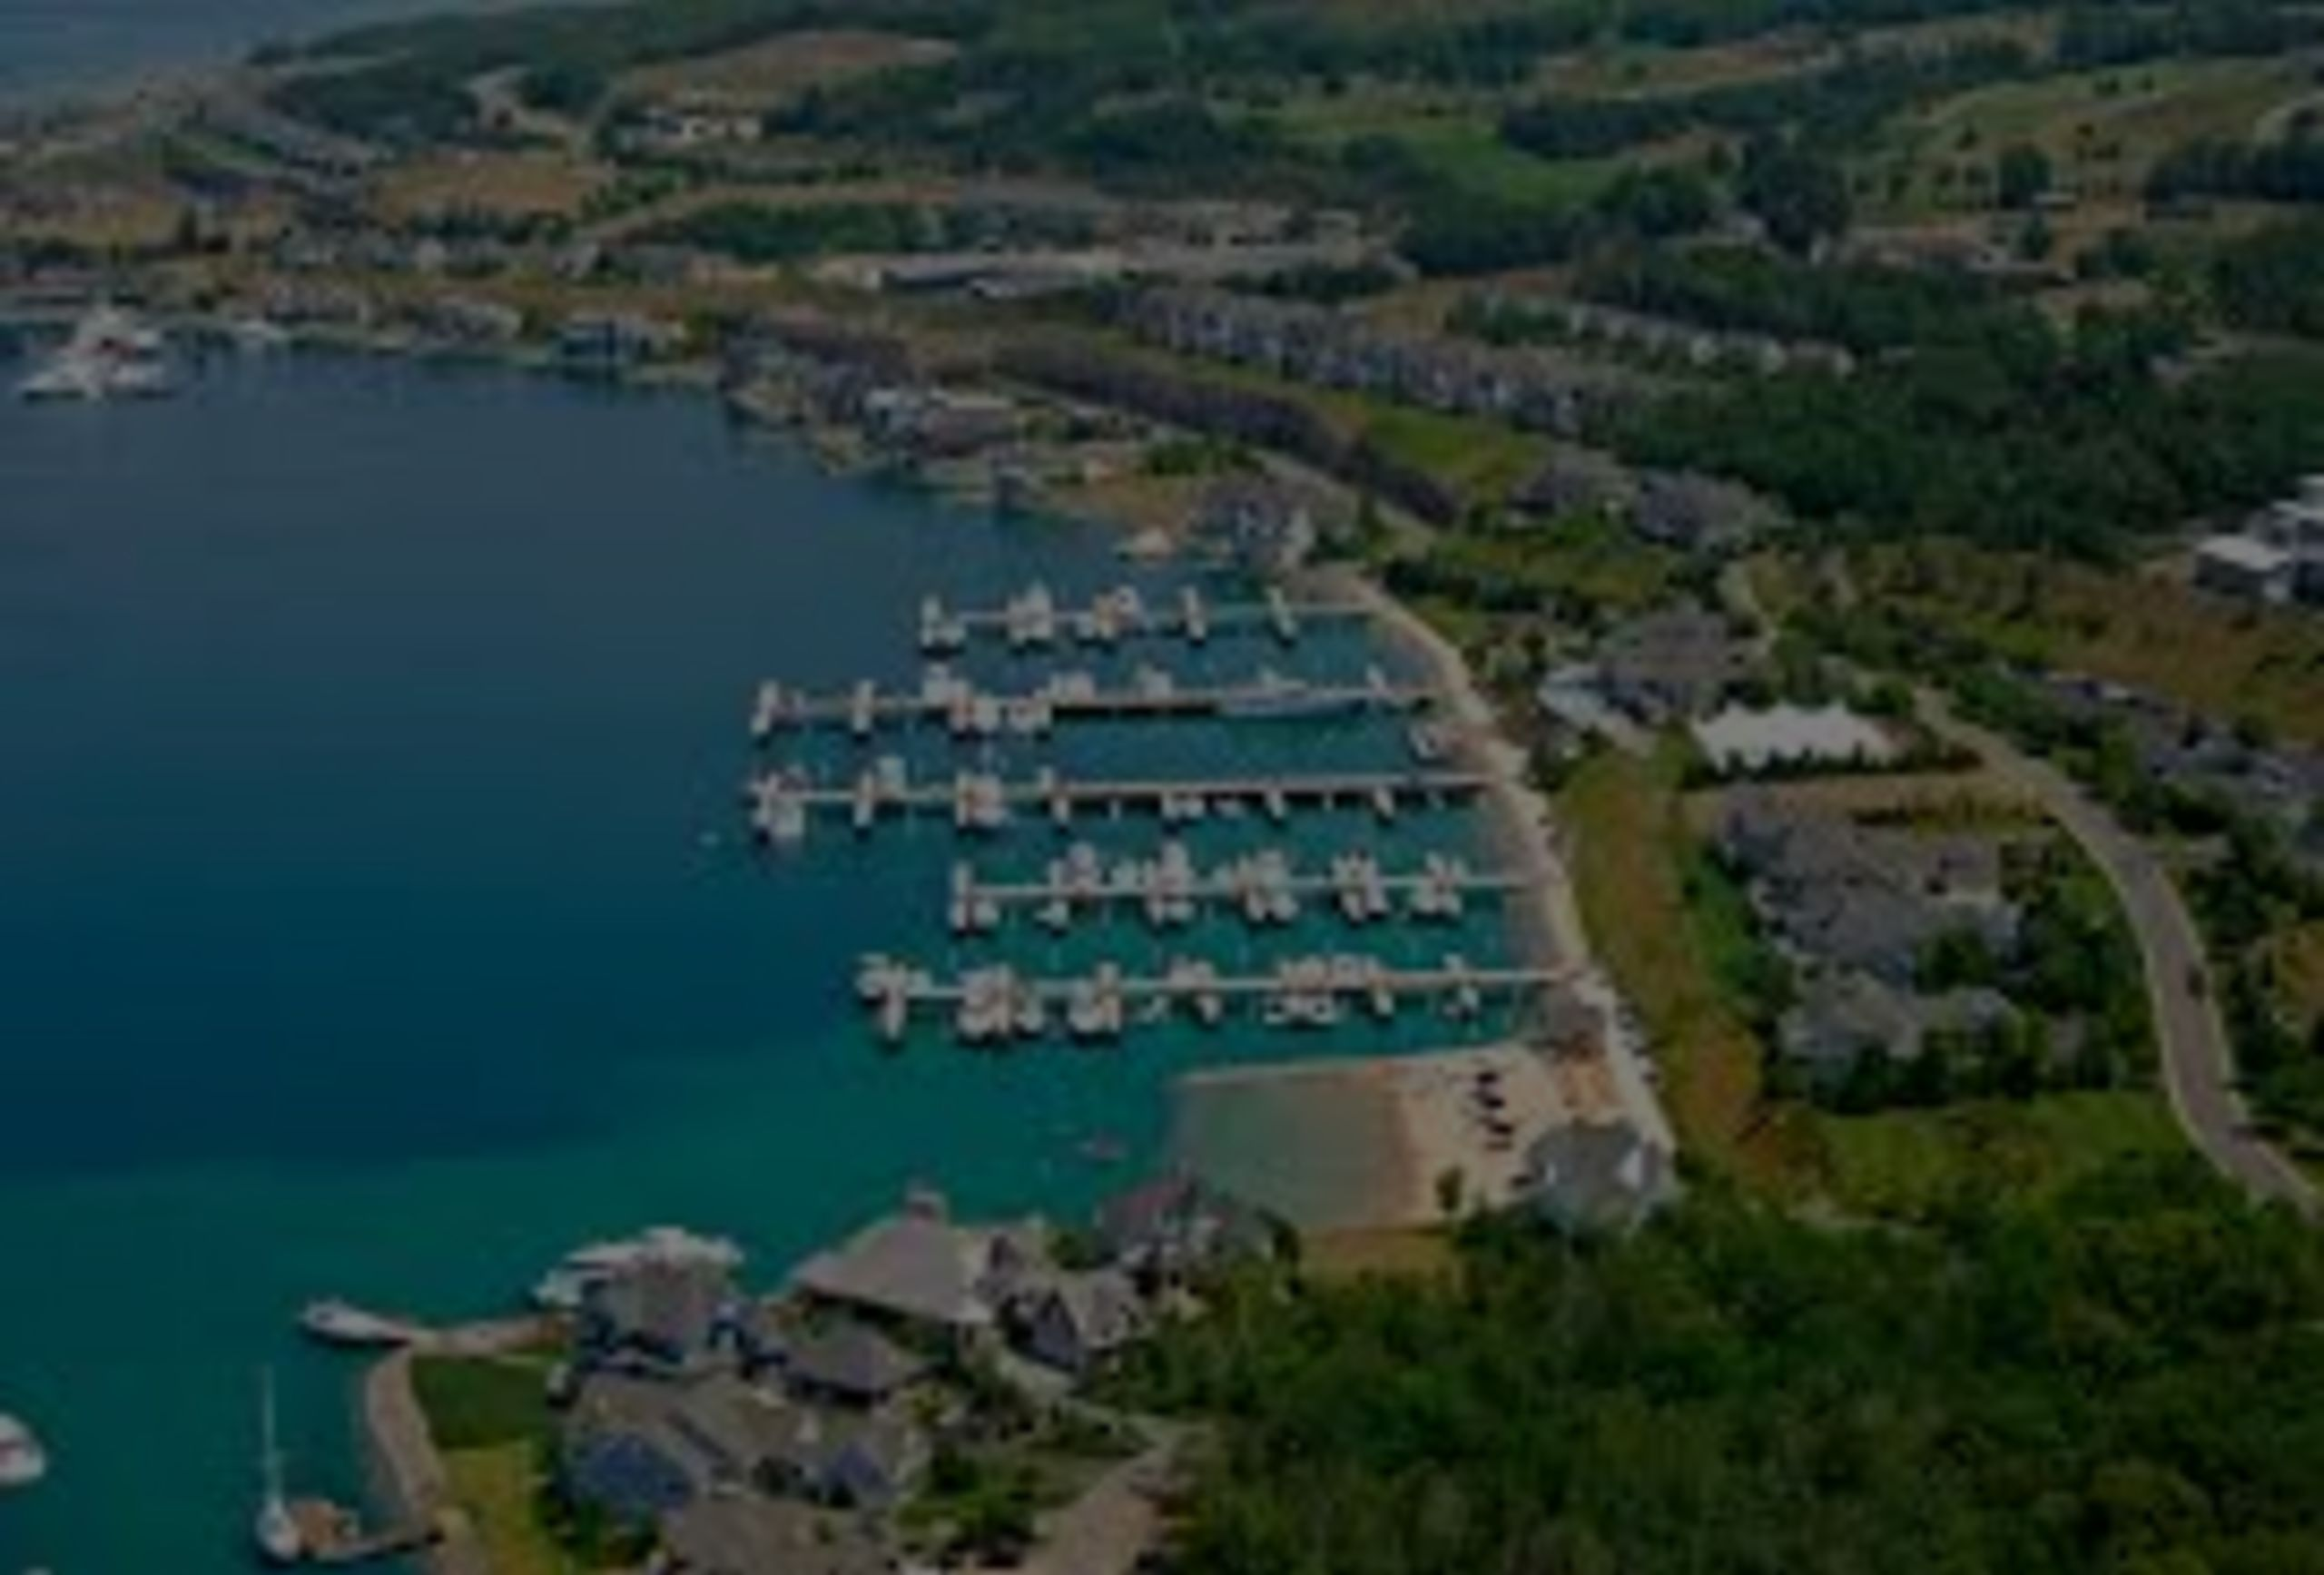 Bay Harbor is one of many gems of Northern Michigan